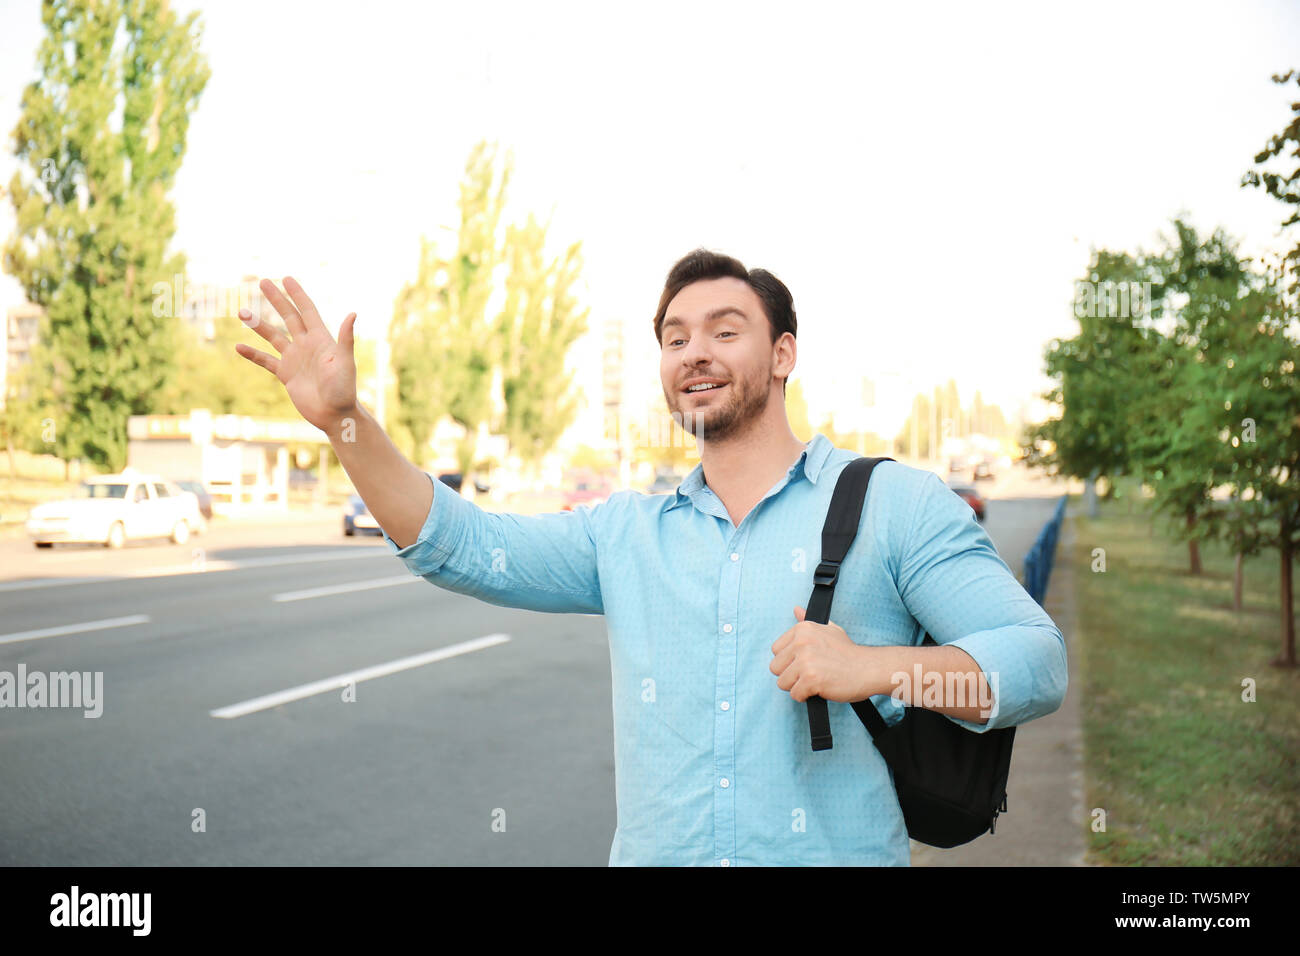 Young man catching taxi on street - Stock Image